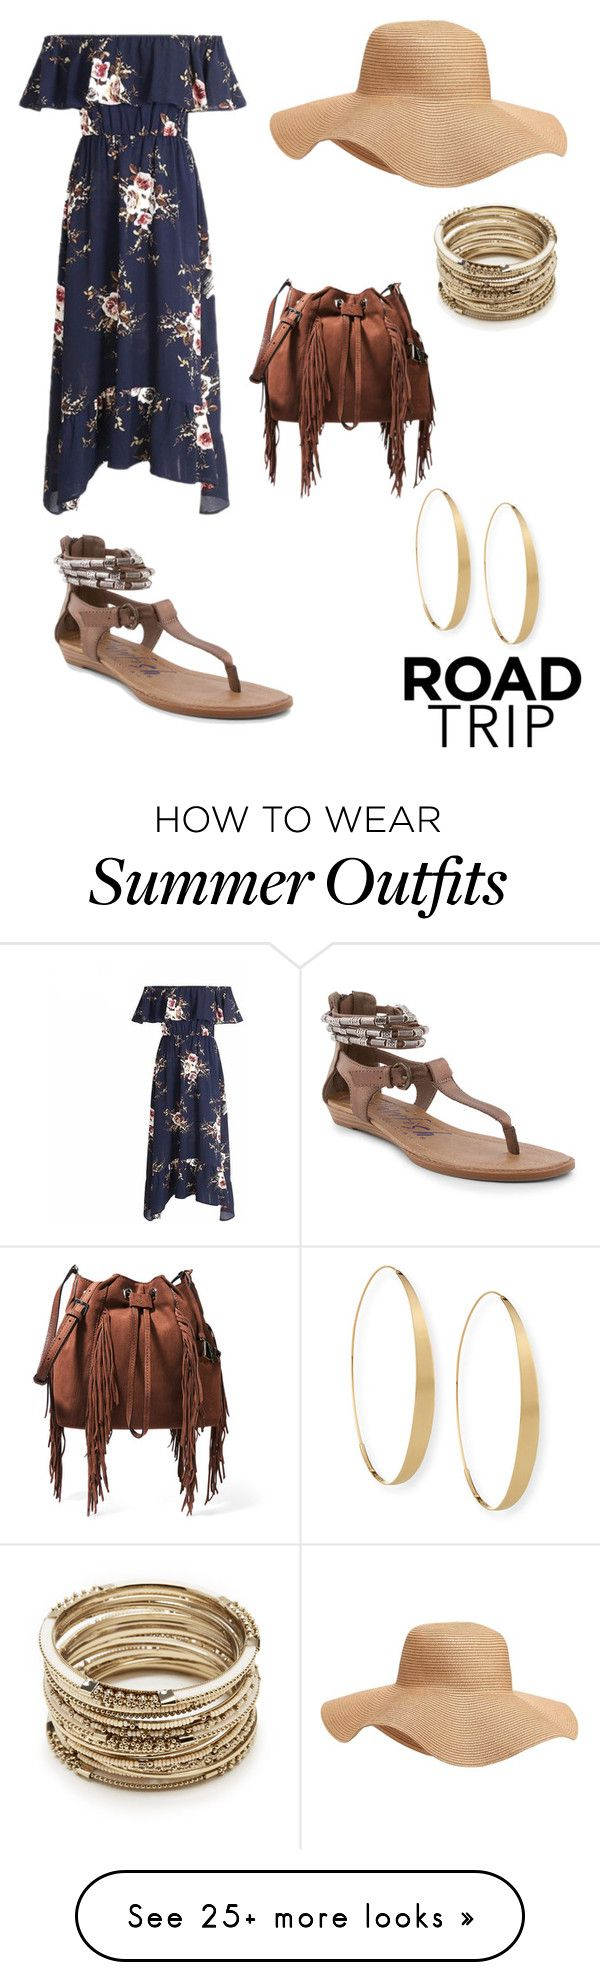 """RoadTrip Outfit"" by jmacbeth129 on Polyvore featuring Diane Von Furst..."